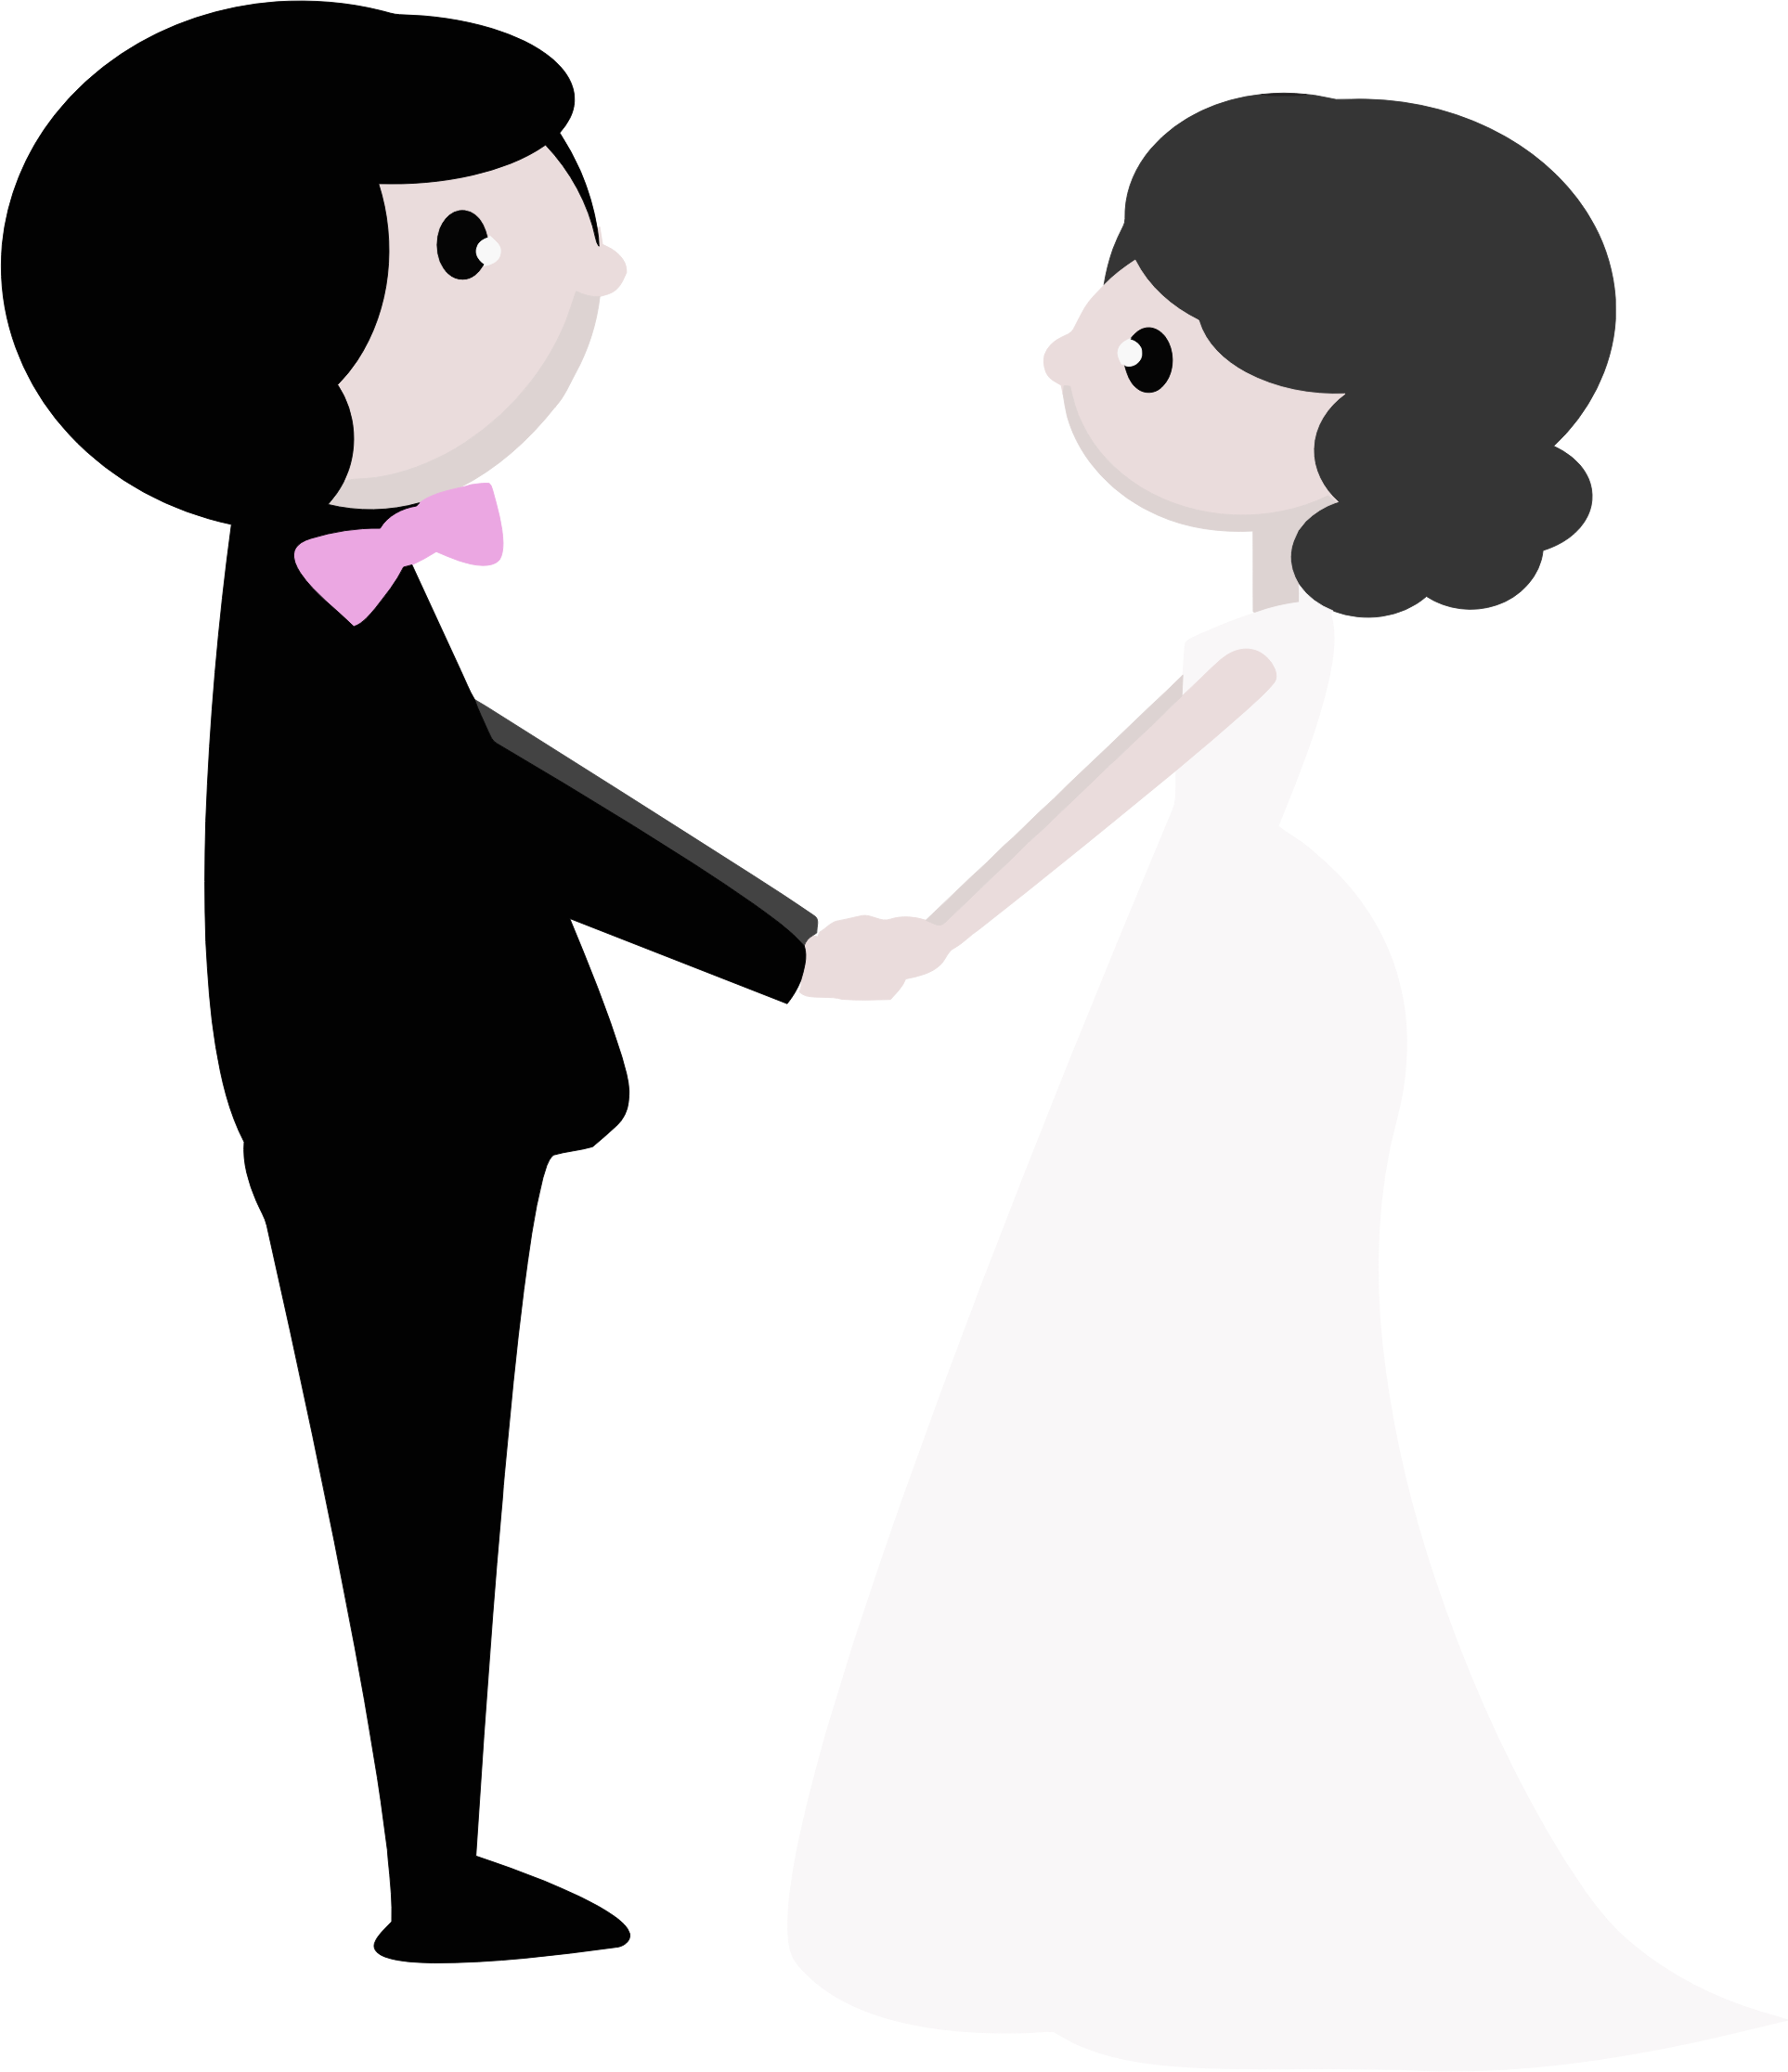 wedding couple silhouette clip art at getdrawings com free for rh getdrawings com marriage clipart marriage clip art christian